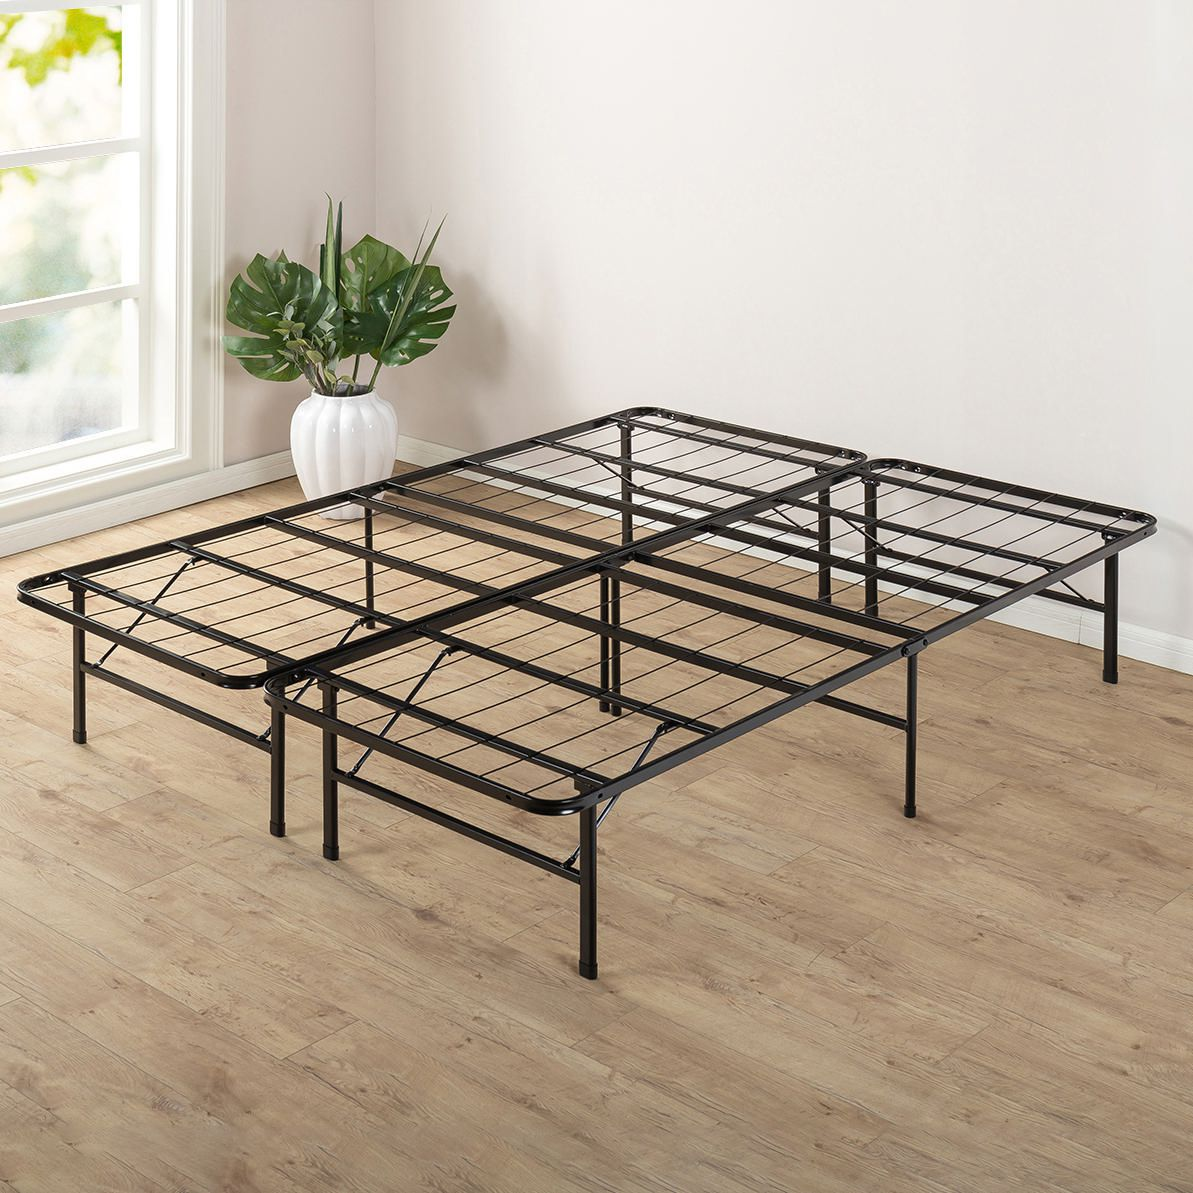 metal bed frames queen walmart metal bed frames queen walmart 48